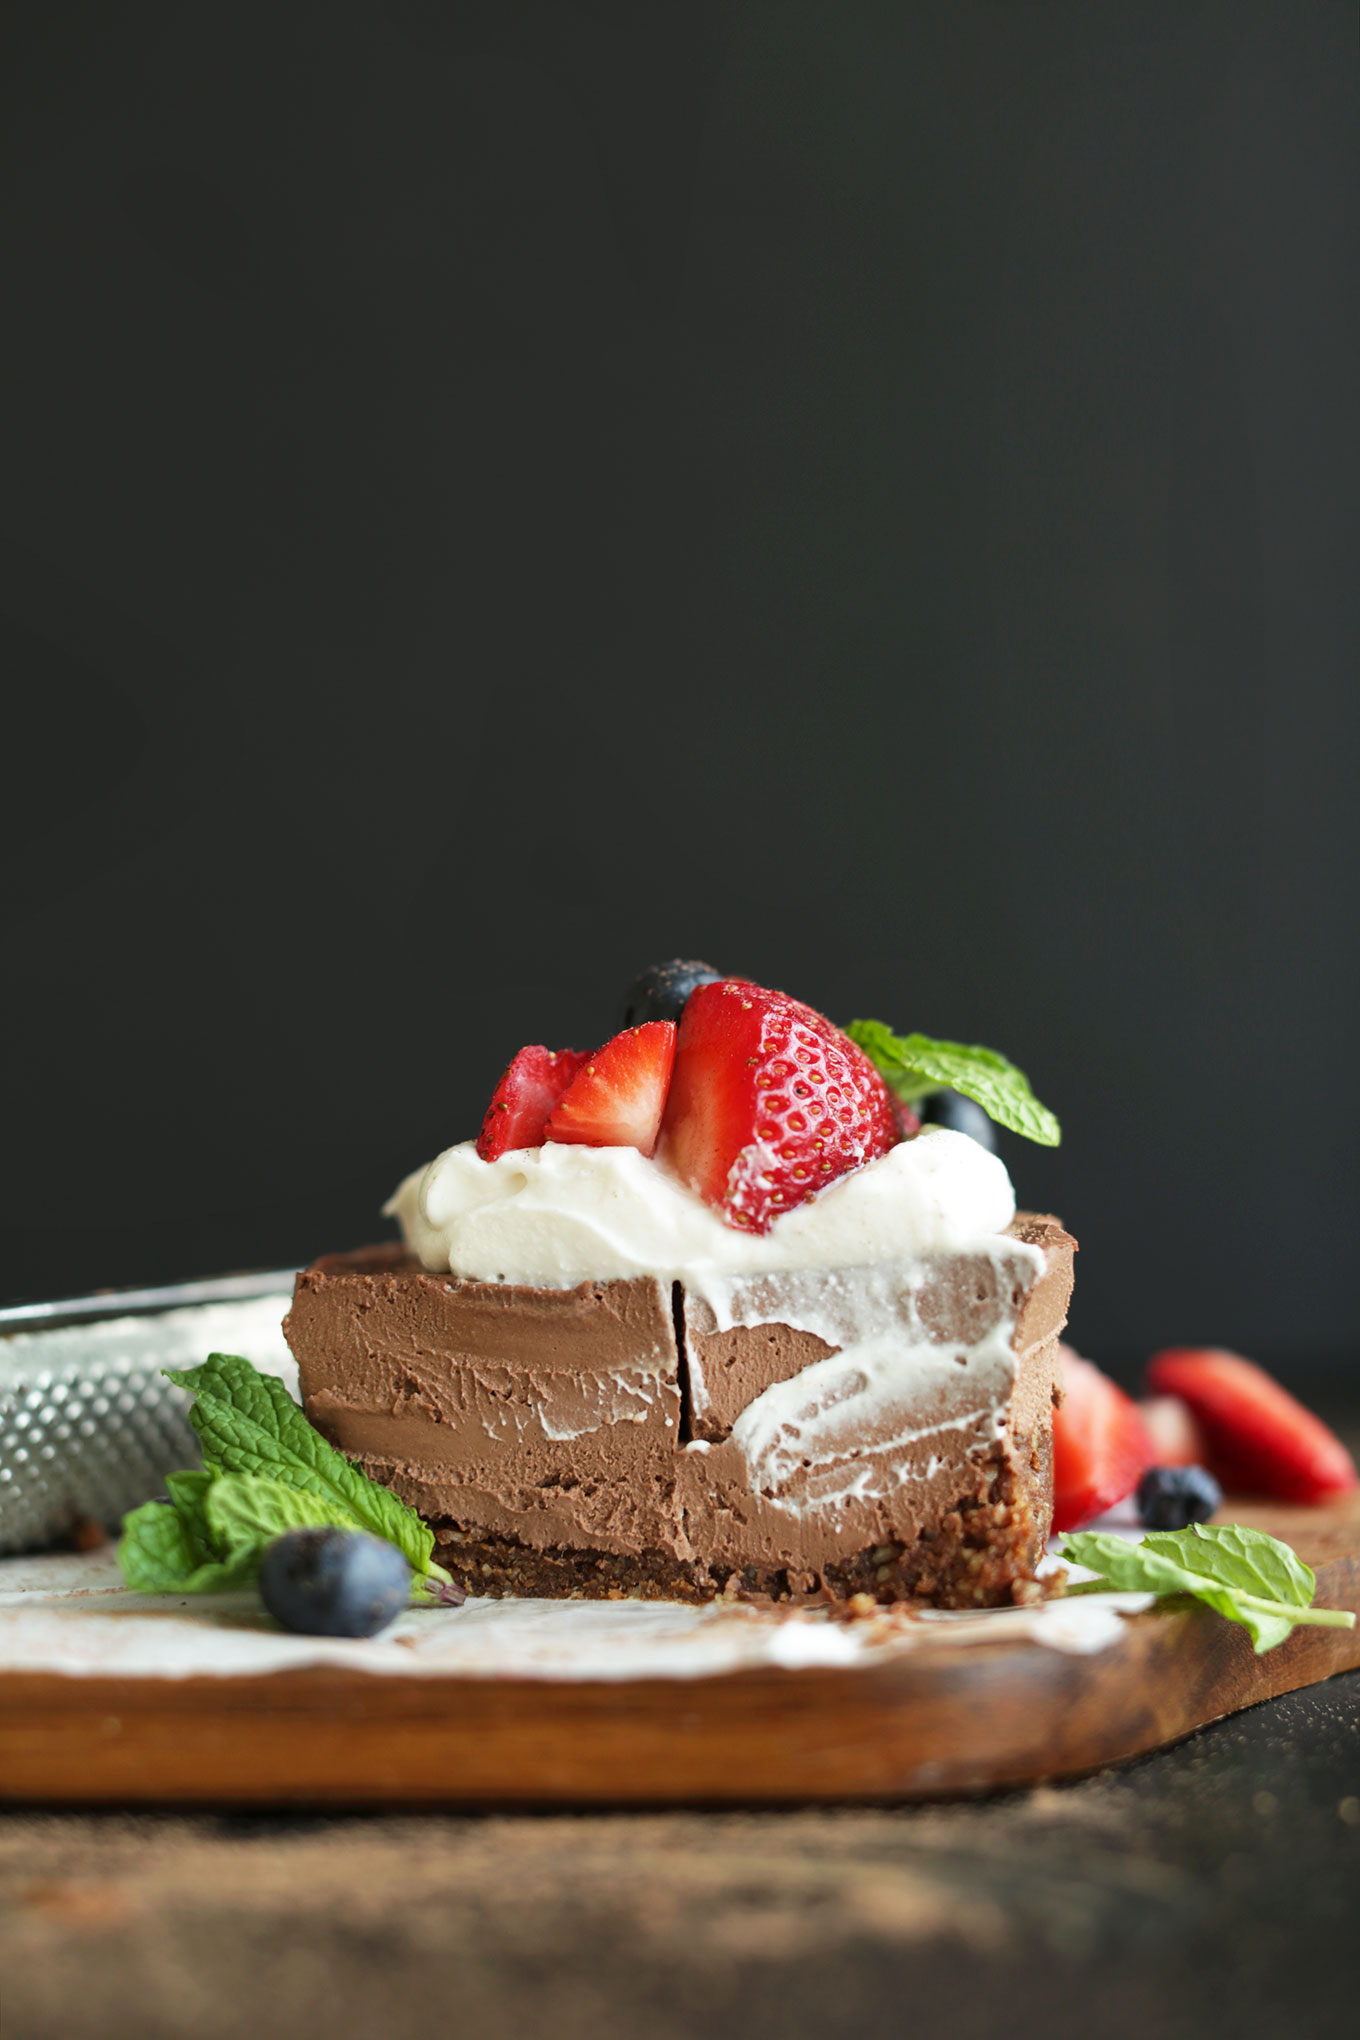 Halved mini Vegan Chocolate Cheesecake revealing its creamy texture